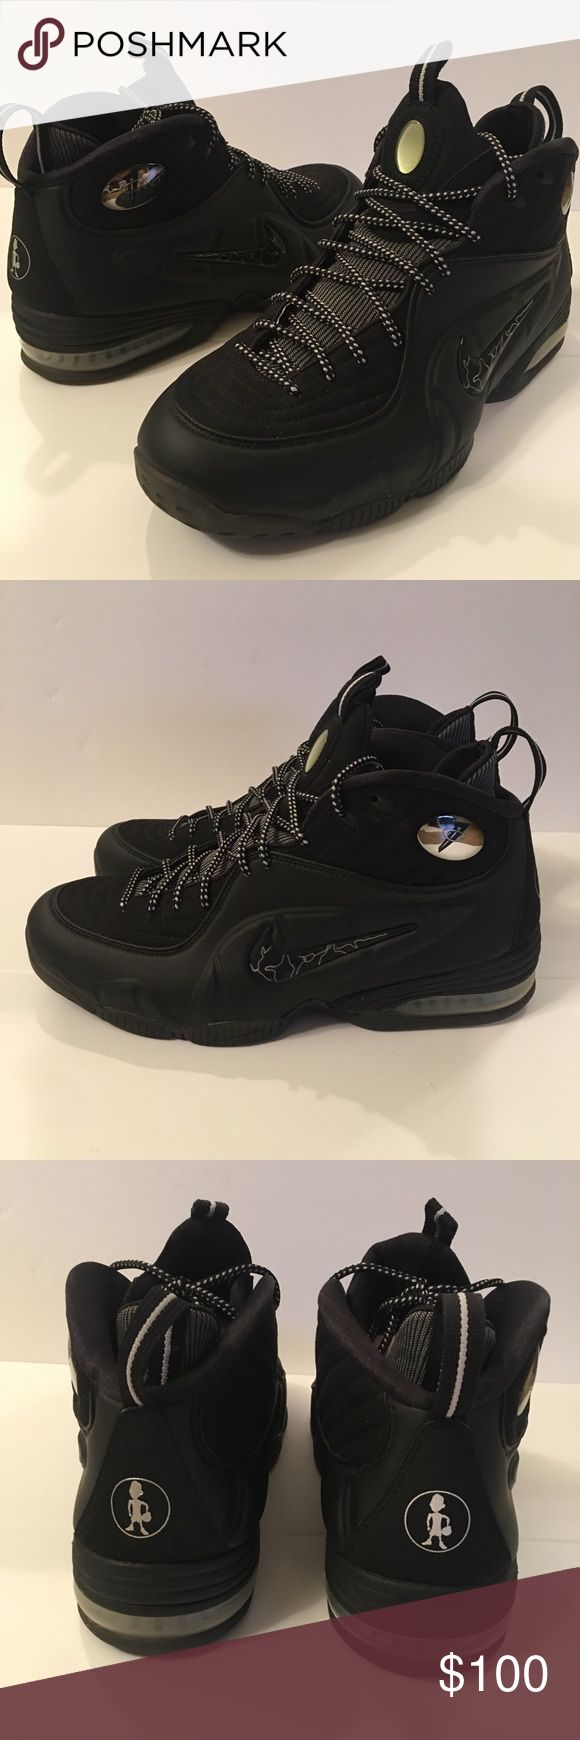 Nike Air Penny 1/2 Cent men's size 11 Nike Air Penny 1/2 Cent men's size 11. Foamposite and Suede Upper. Great condition, comes in Original box. Nike Shoes Athletic Shoes